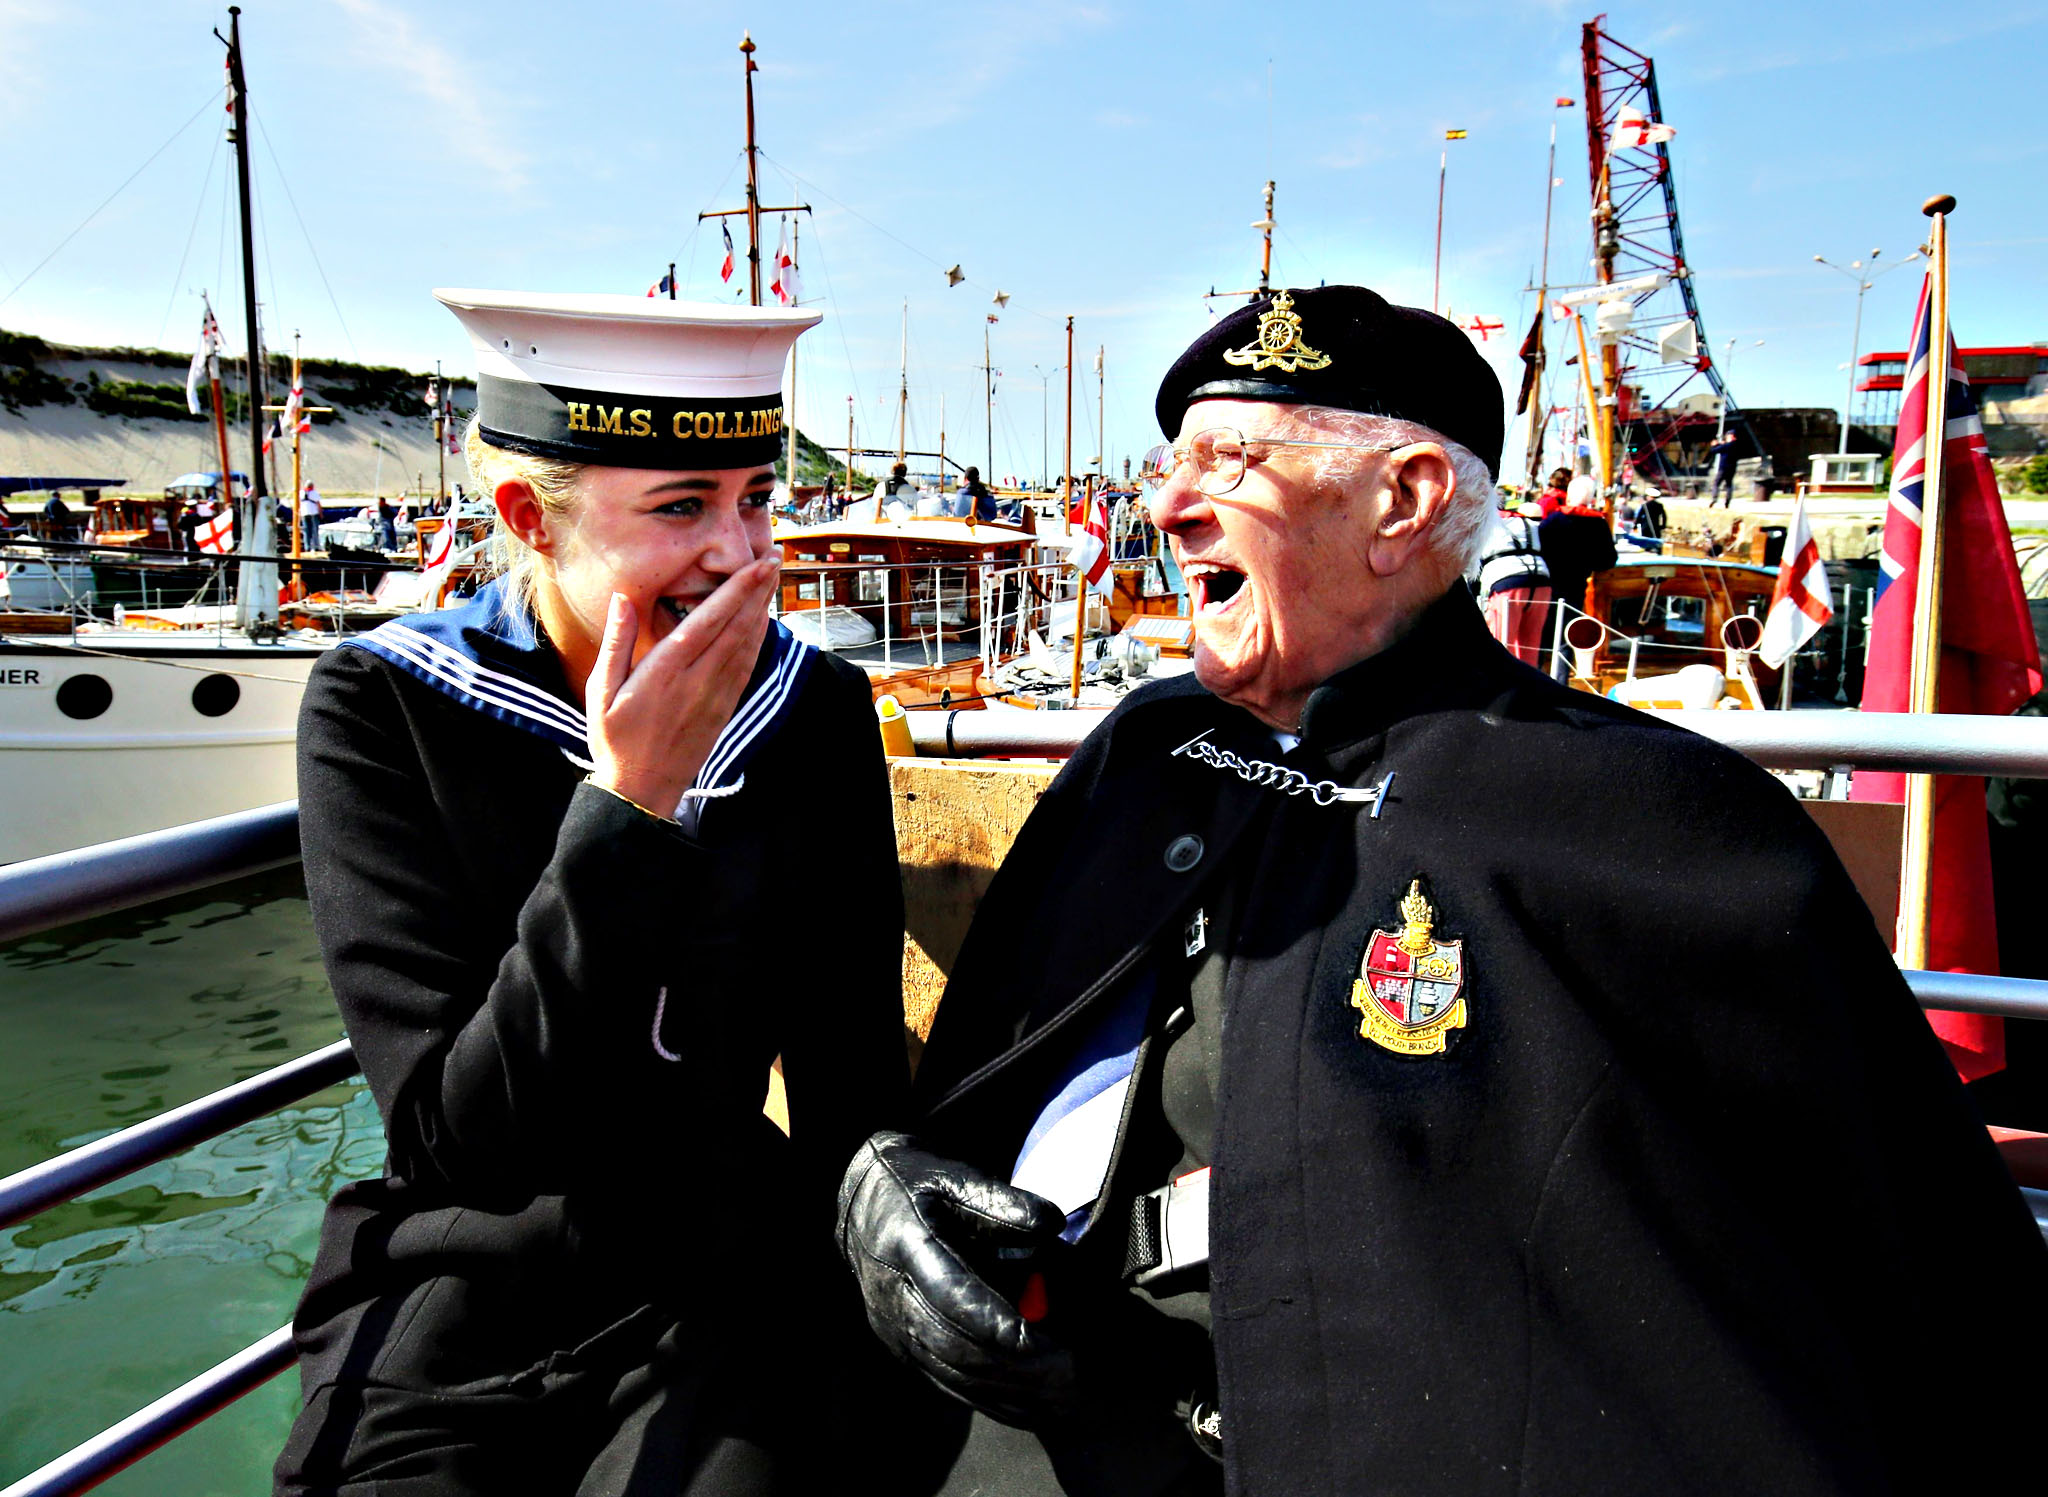 Dunkirk veteran Garth Wright (95) with Royal Navy Wren Lauren Parsons on board the Little Ship the Princess Freda as the Little Ships arrive in Dunkirk, France, to mark the 75th anniversary of Operation Dynamo. PRESS ASSOCIATION Photo. Picture date: Thursday May 21, 2015. Hundreds of fishing boats, pleasure yachts and lifeboats crossed the Channel between May 26 and June 4 1940, to help evacuate Allied forces from the beaches of northern France